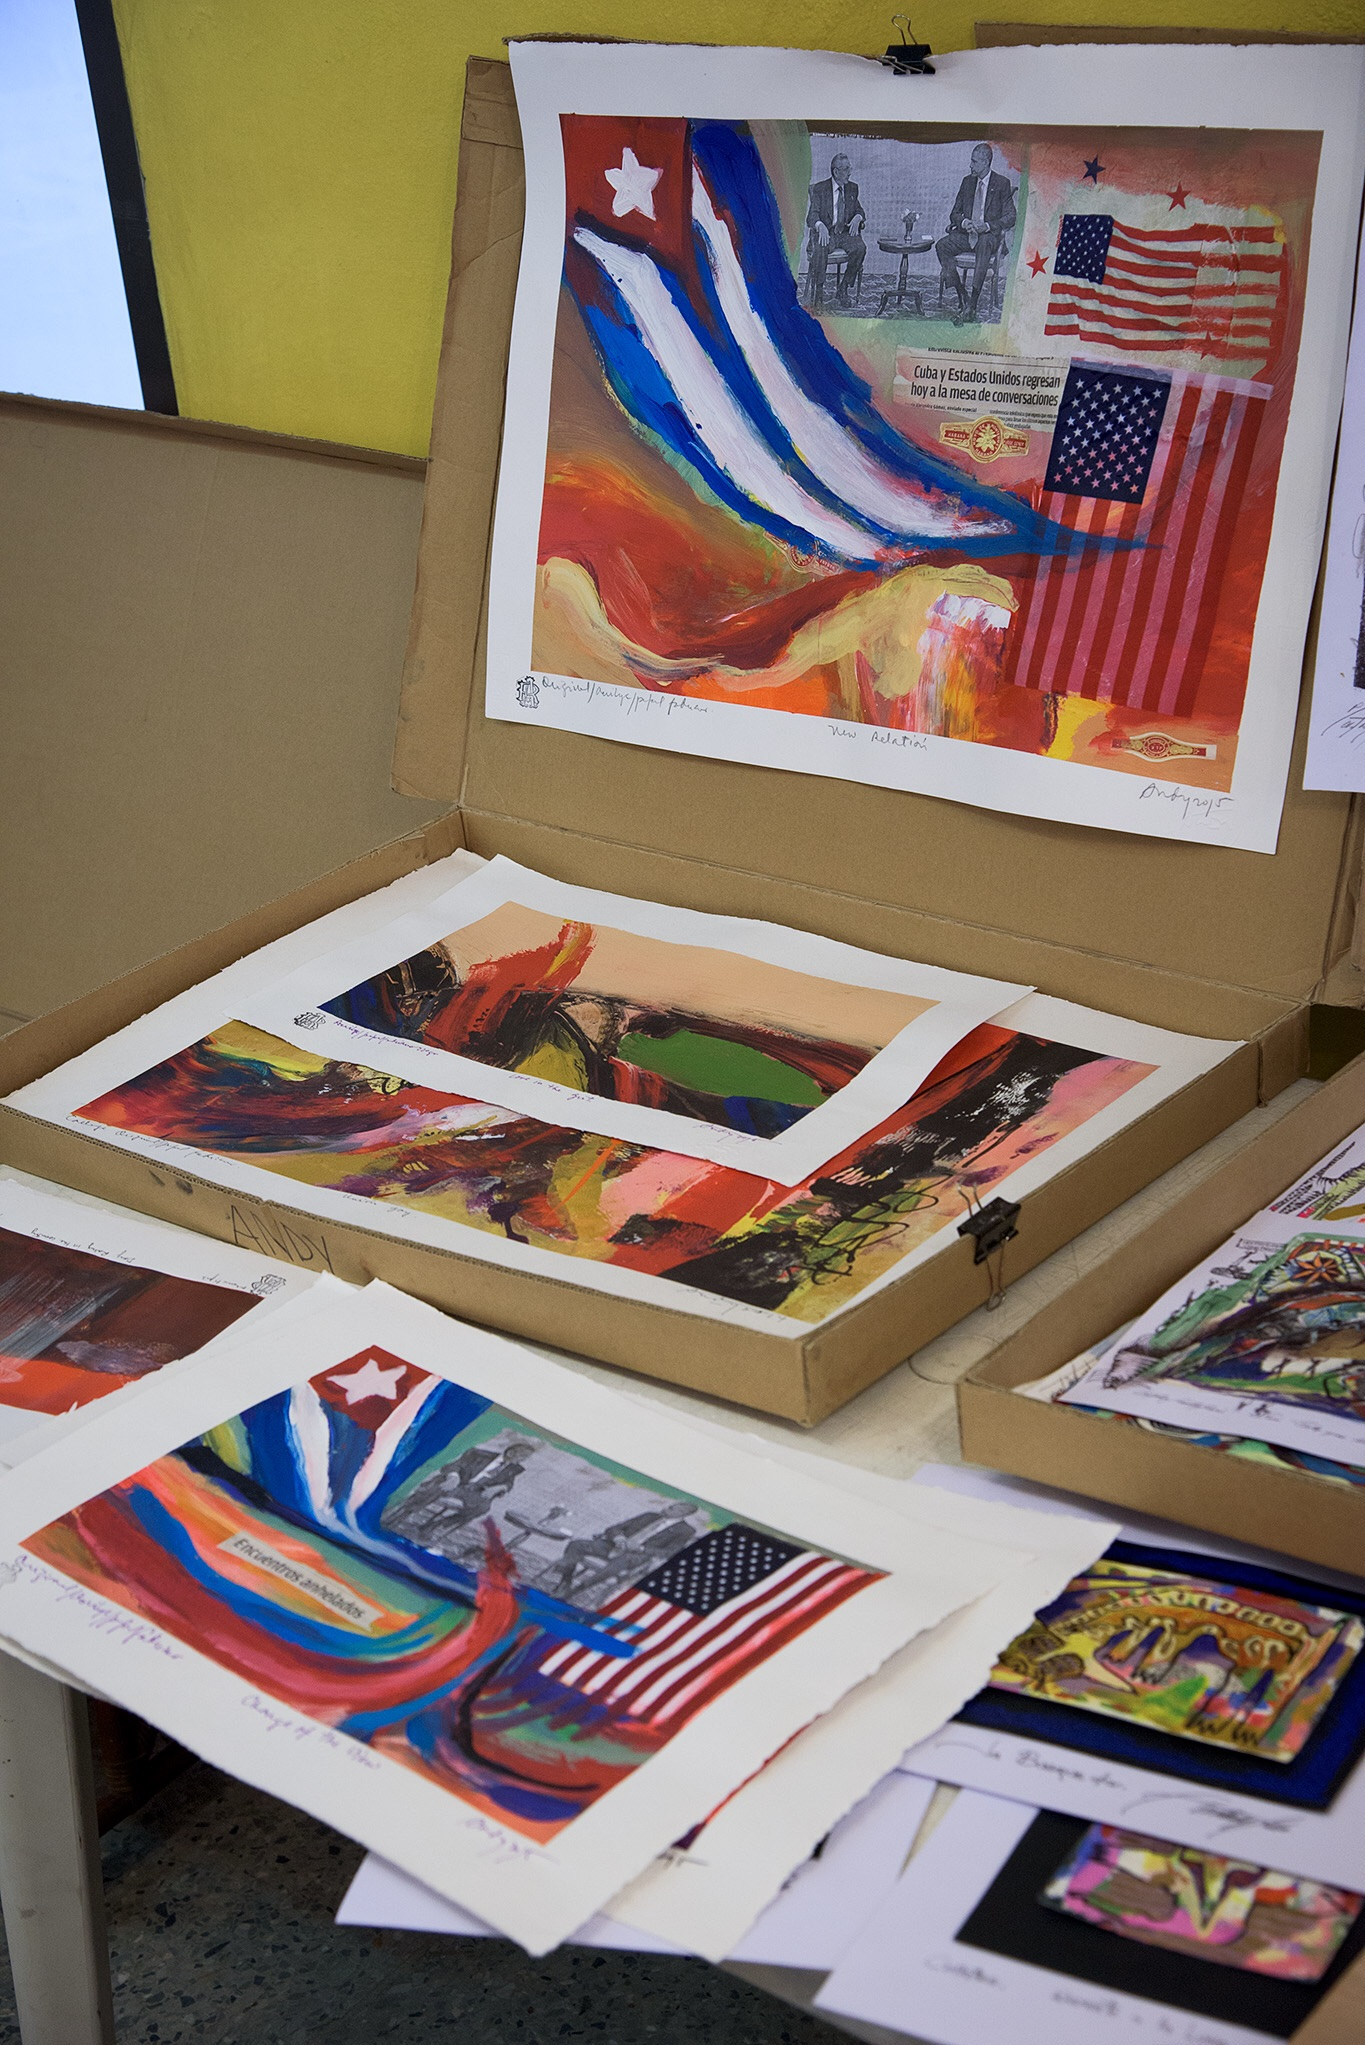 We visited a print shop and gallery where original artwork was available, including this work celebrating the opening of relations between the U.S. and Cuba.